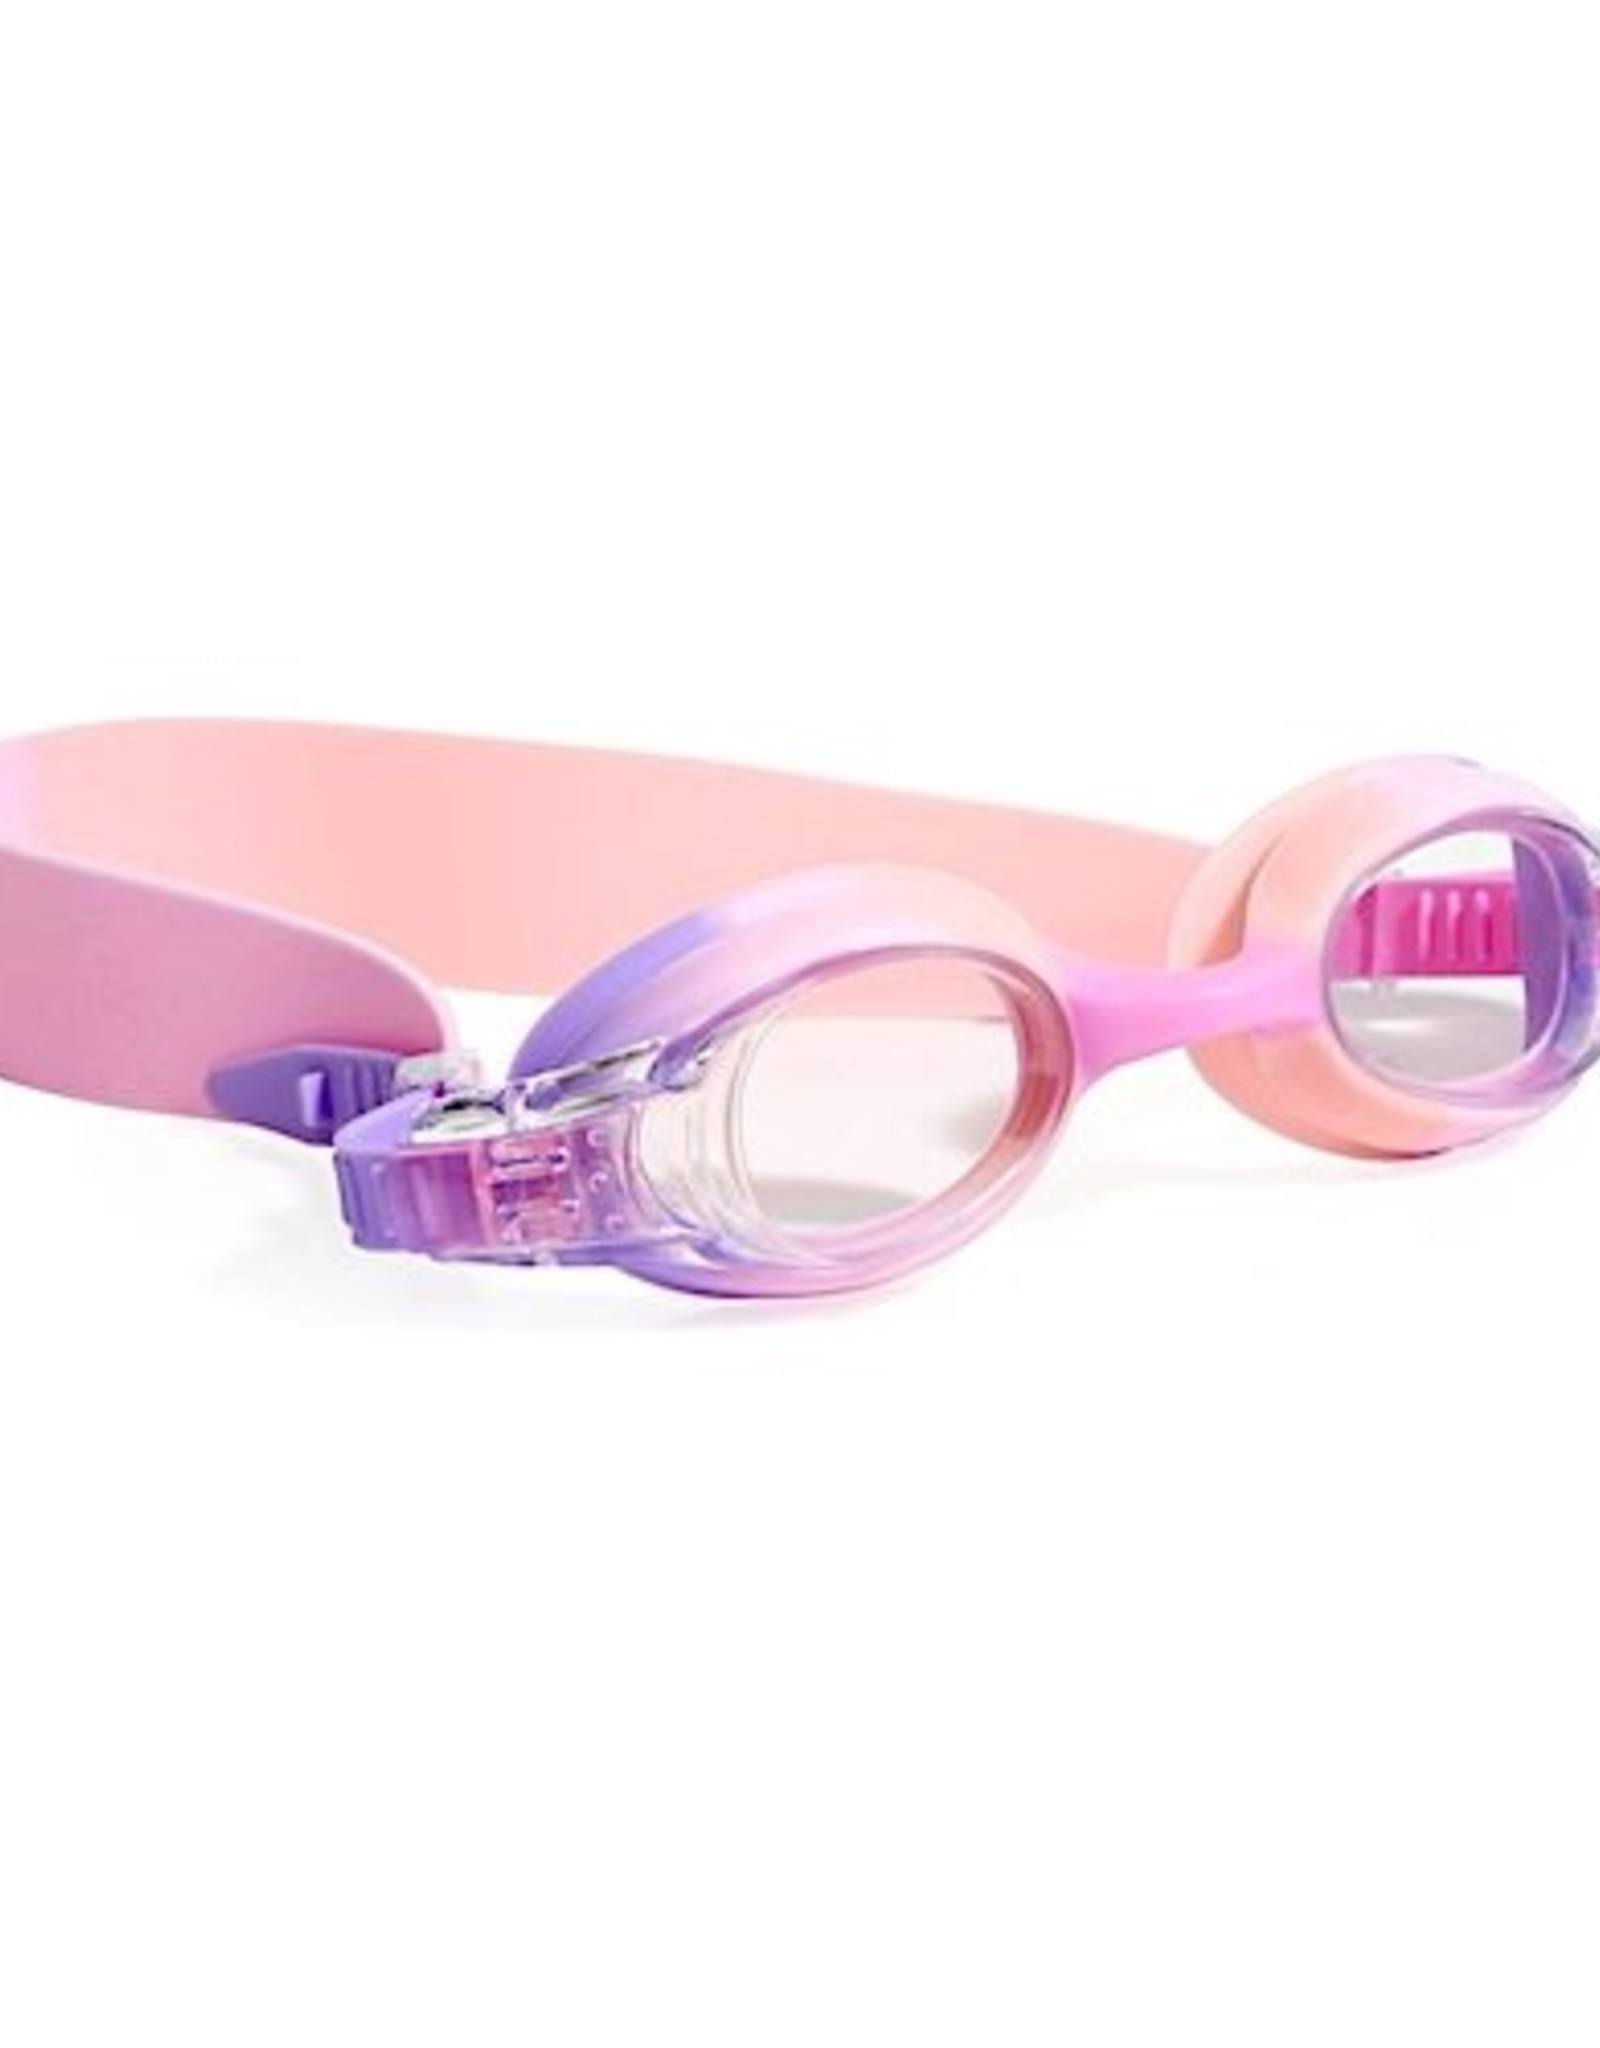 Bling20 Goggles GirlItzy 18mths+